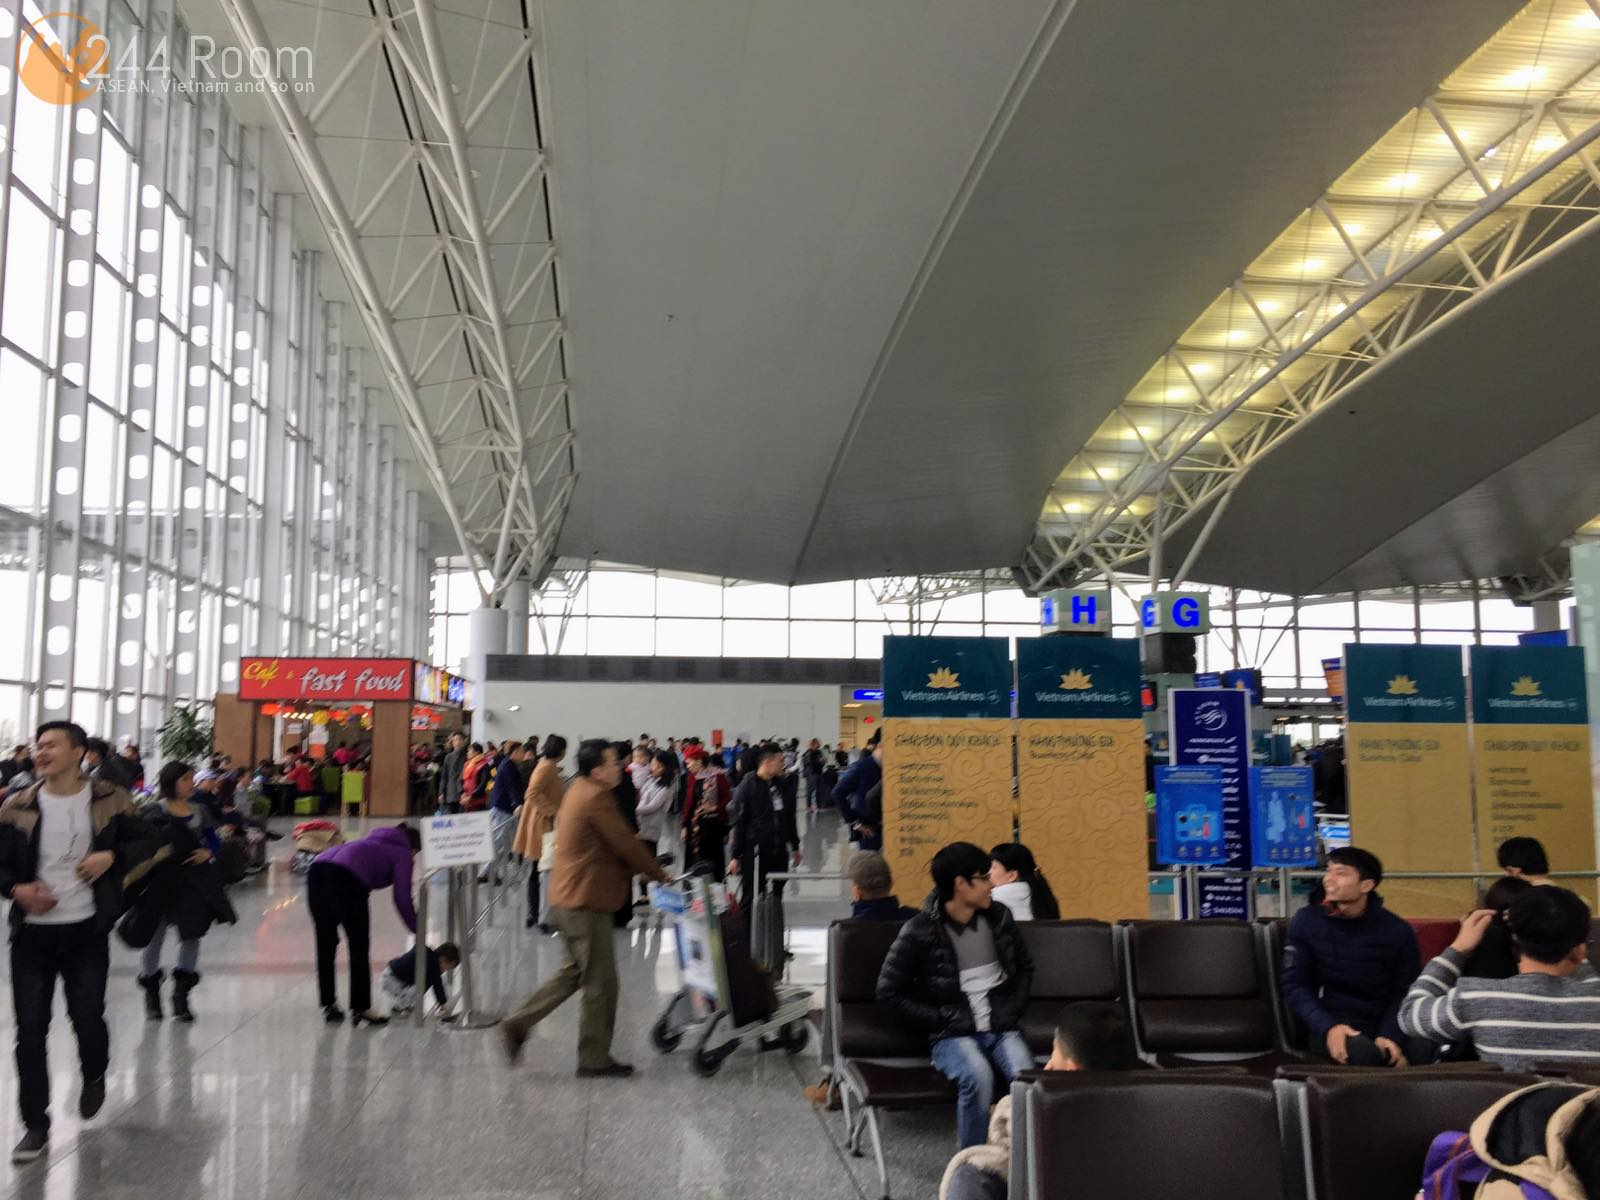 ノイバイ空港国際線ターミナル Noibai Airport Terminal2 Skypriority Counter